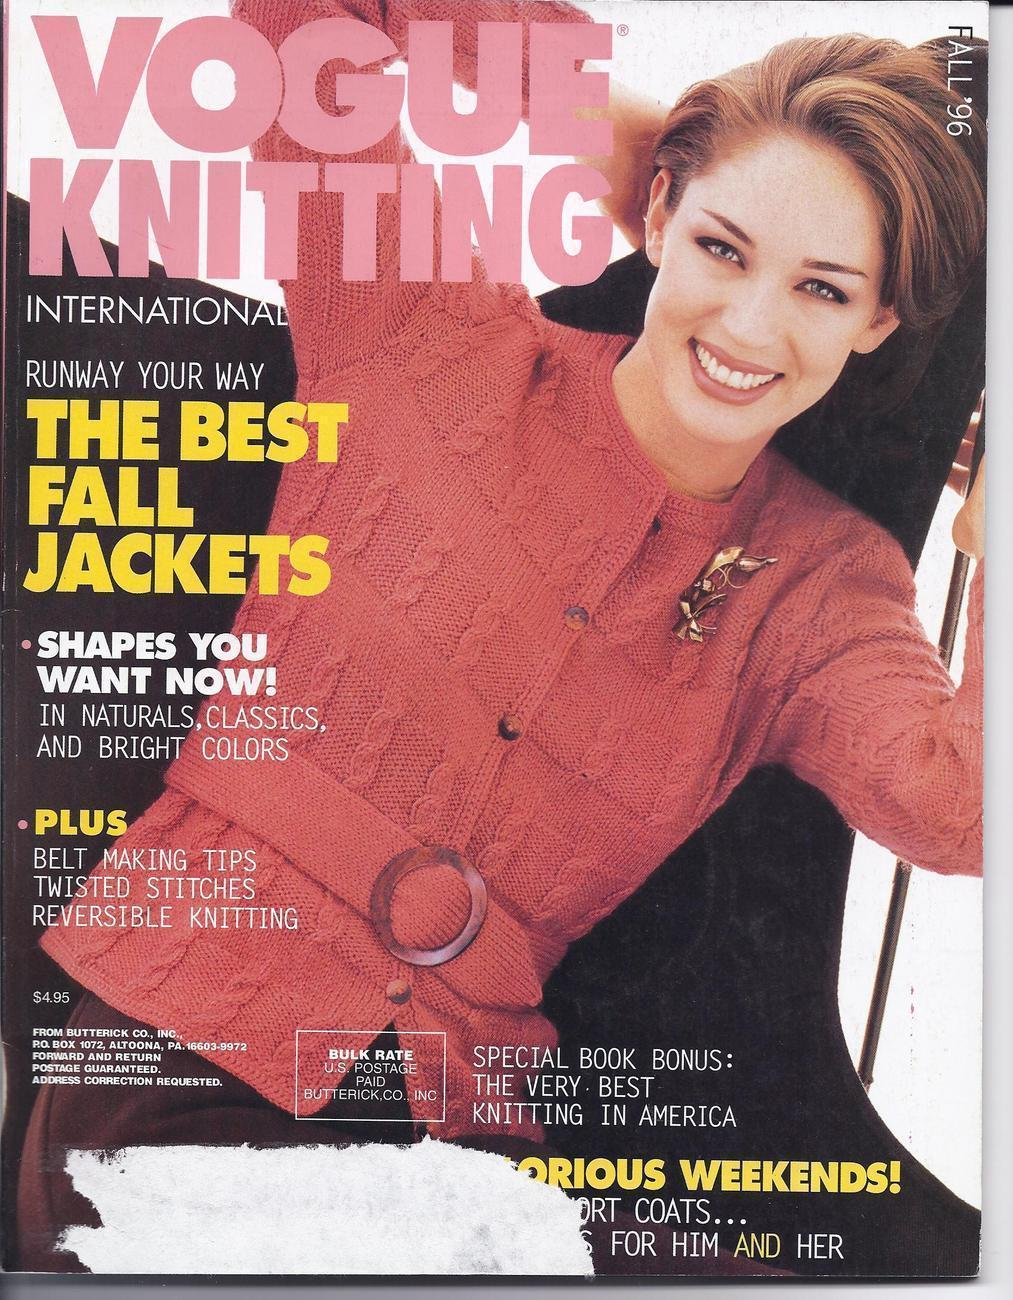 Knitting Magazines List : Vogue knitting magazine fall patterns contemporary